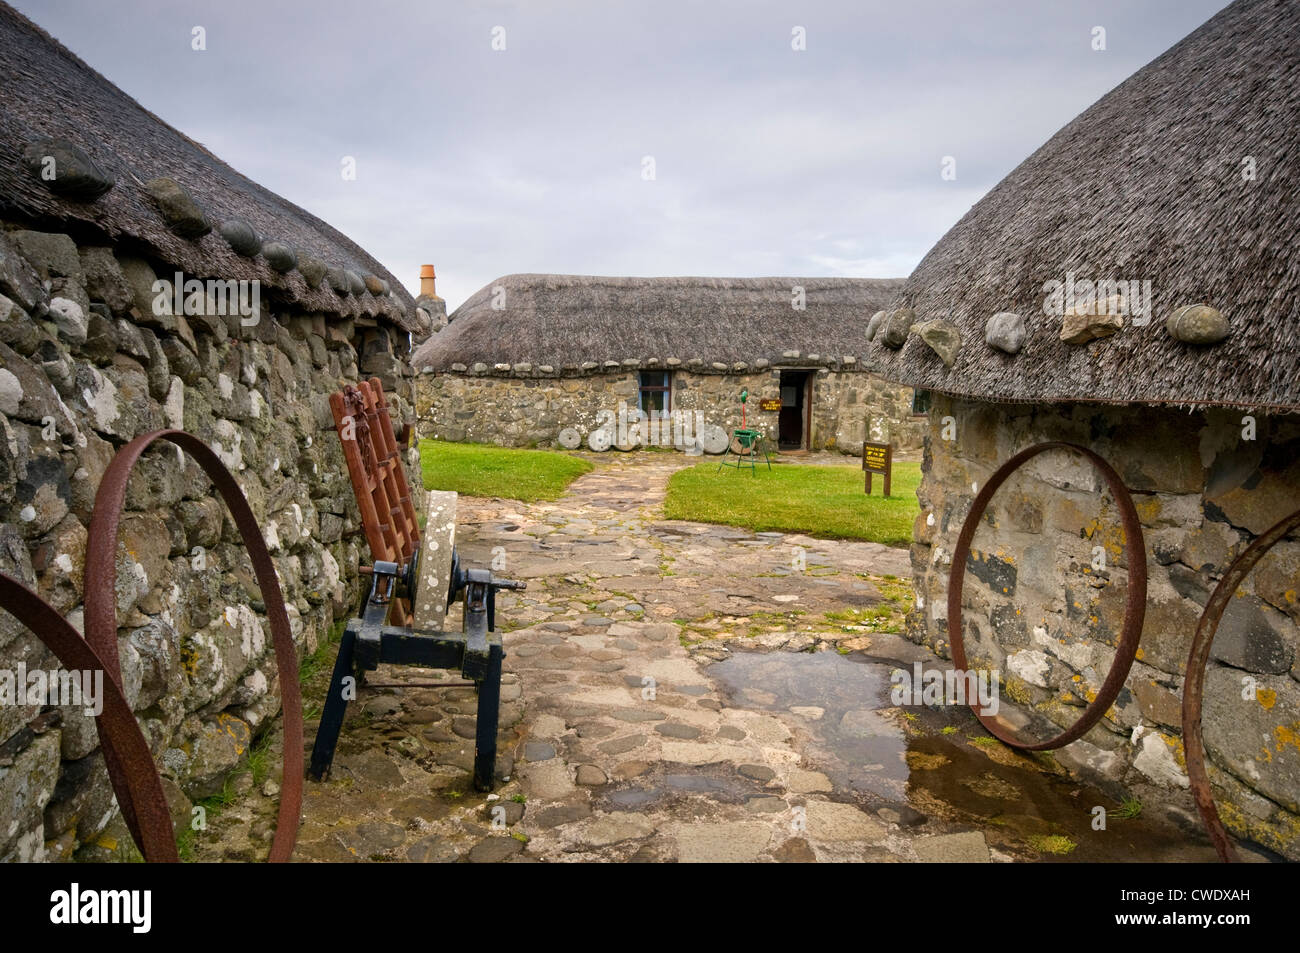 Traditional croft buildings at the Museum of Island Life on the Isle of Skye, Scotland, UK - Stock Image